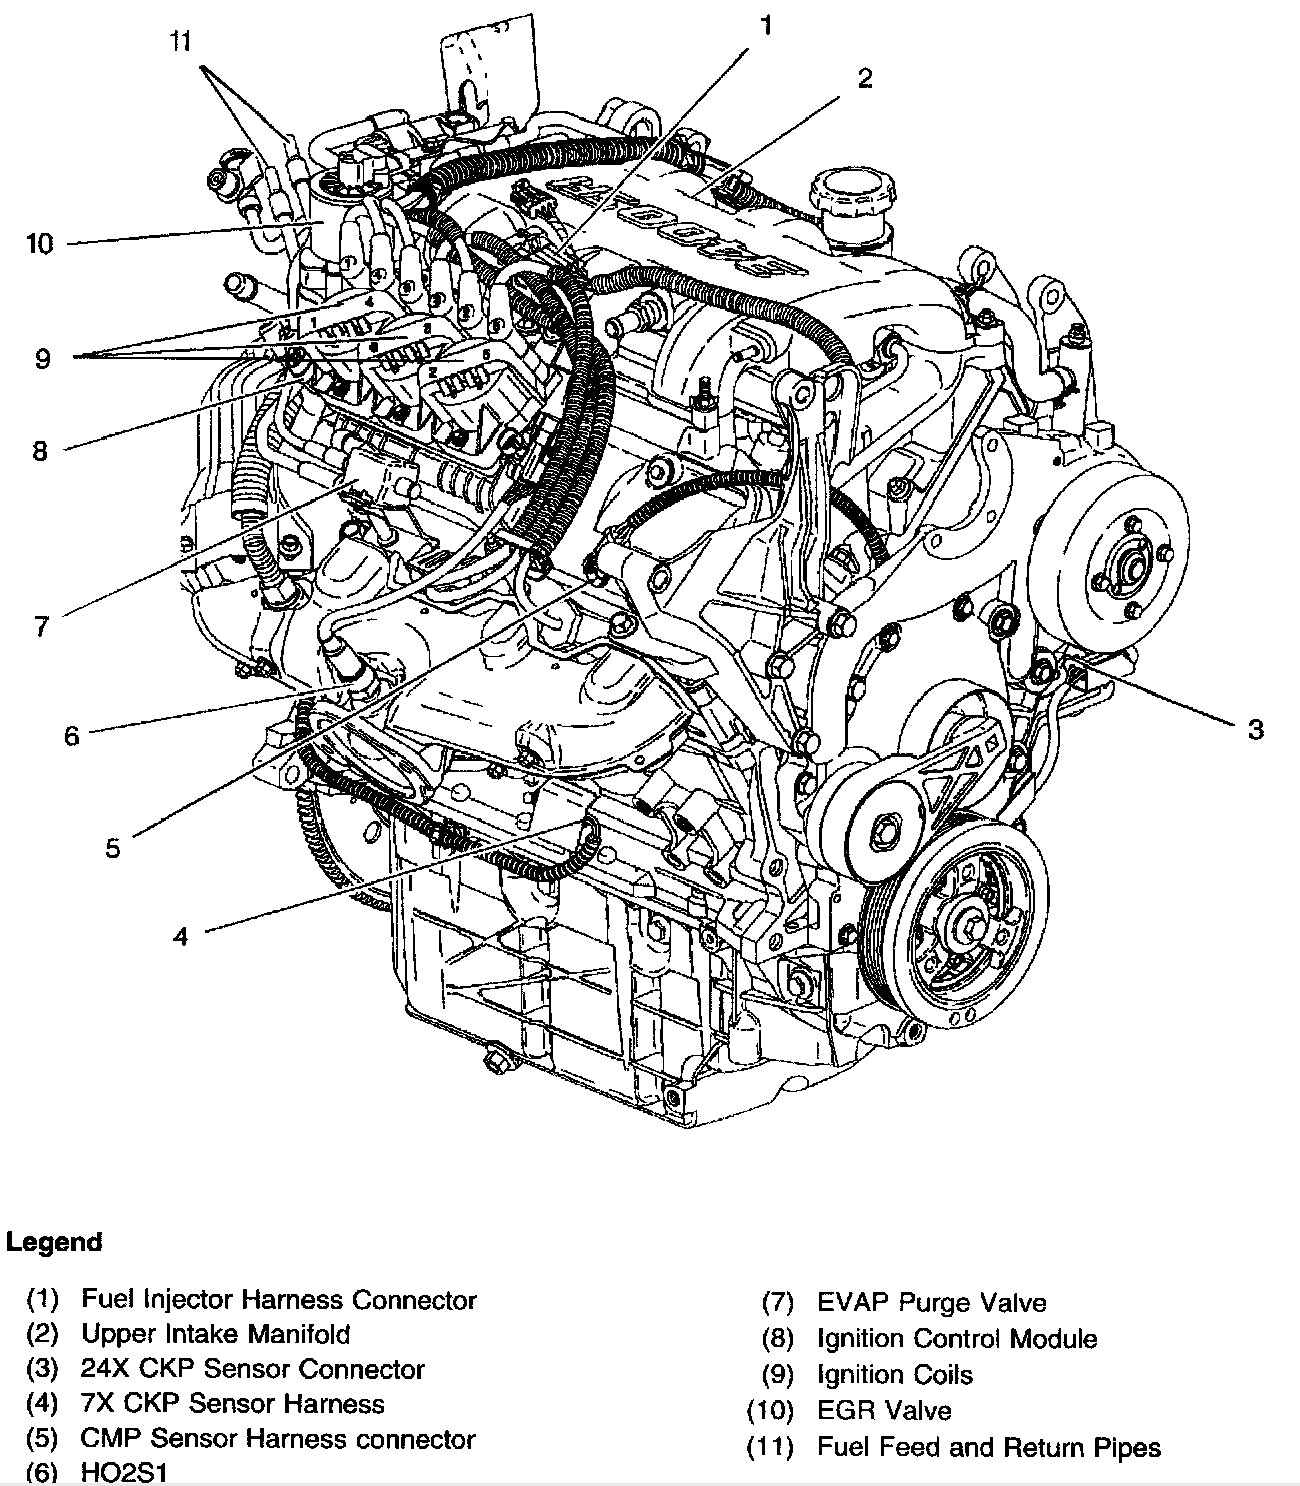 Chevy Volt Charging System Diagram Cavalier Engine Putting 3400 Front Diagrams Pinterest Of